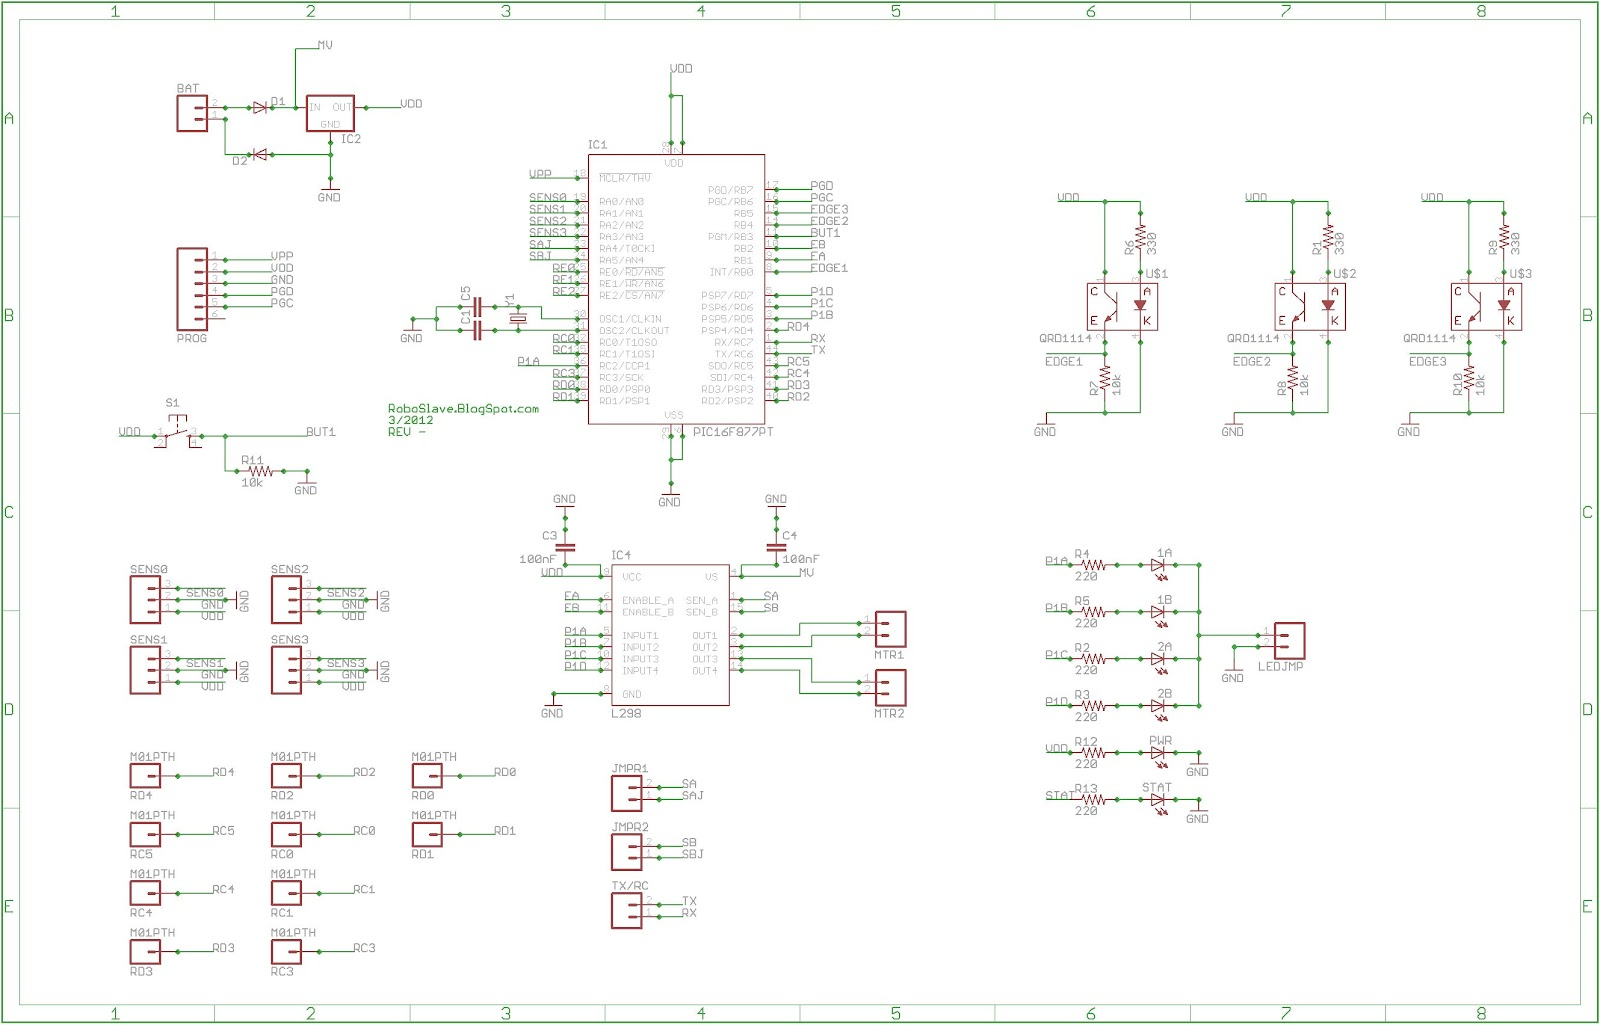 RoboSlave: Sumo Bot Schematic and Printed Circuit Board (PCB)